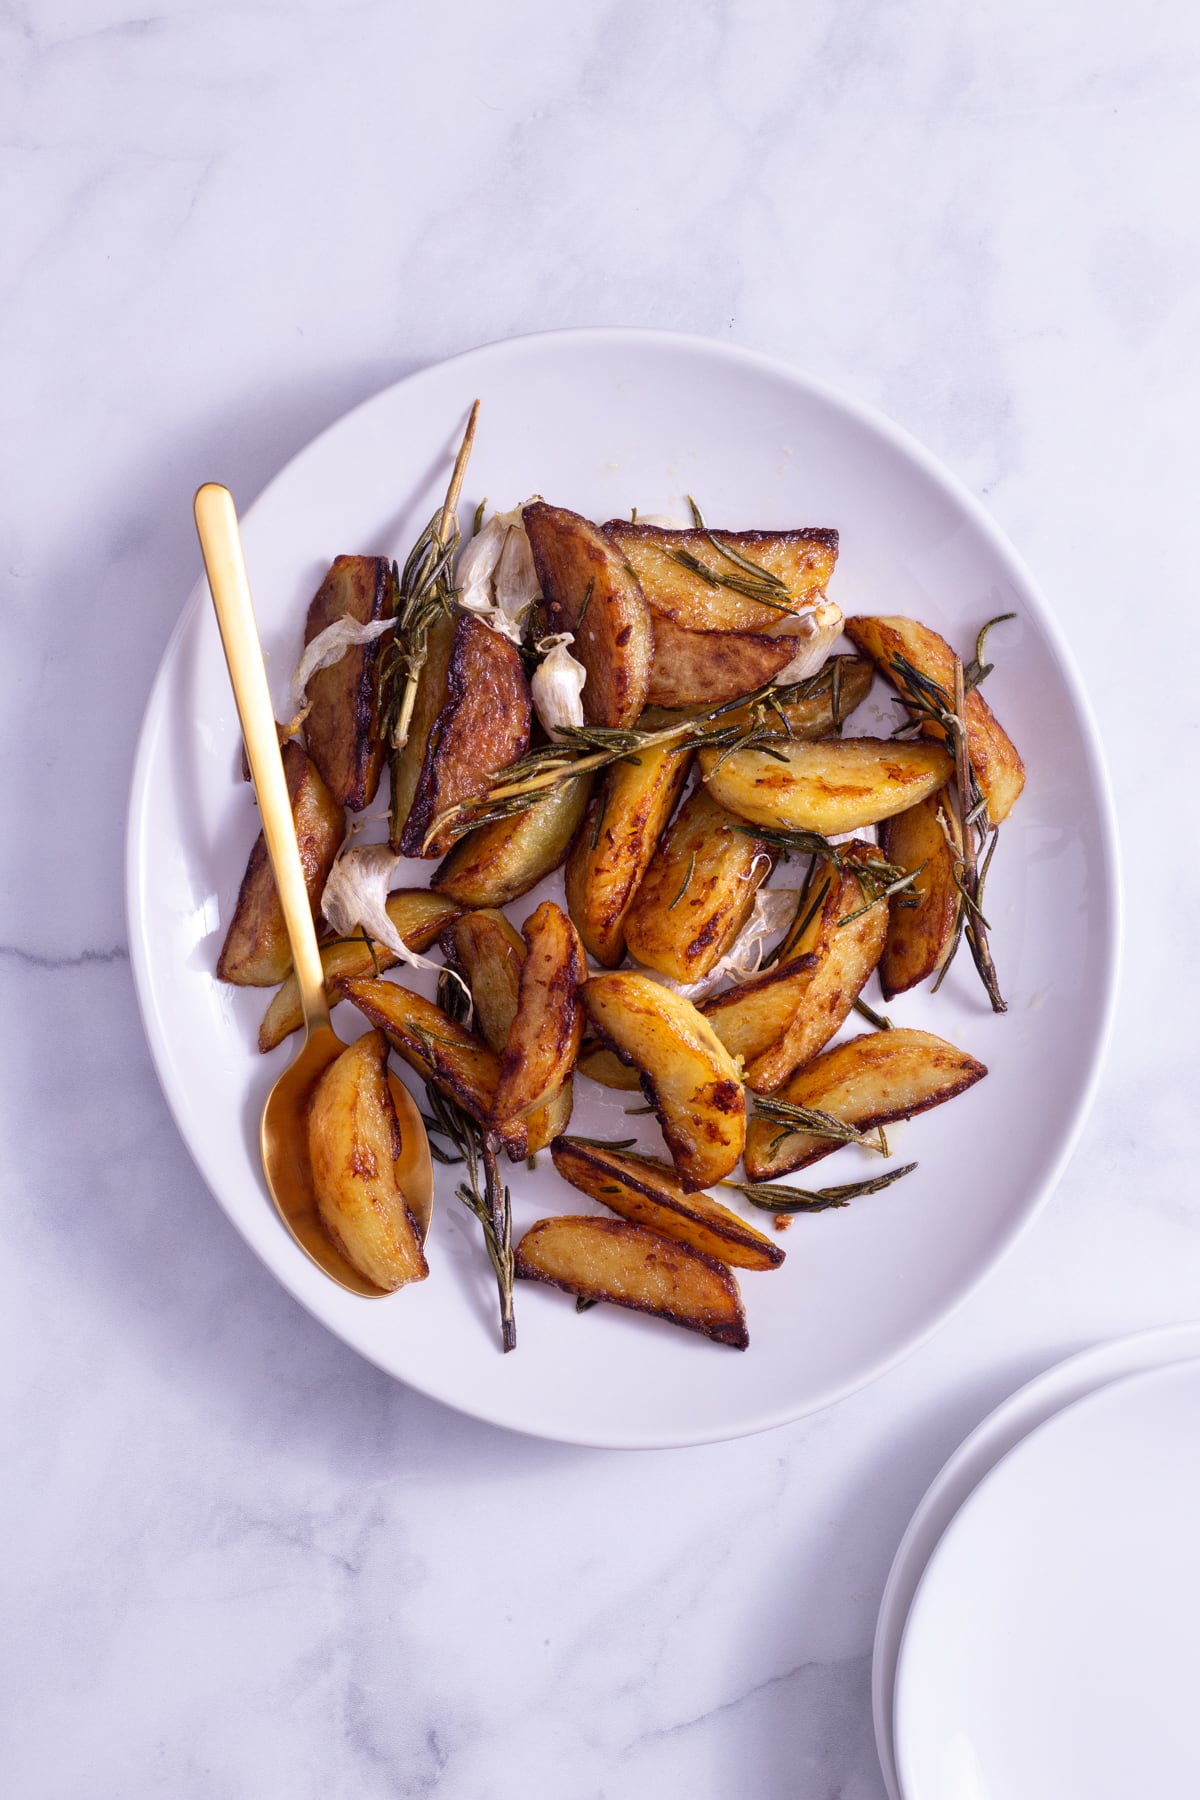 Overhead view of potato wedges with fresh rosemary and garlic cloves on a white platter with a gold spoon on a marble surface.